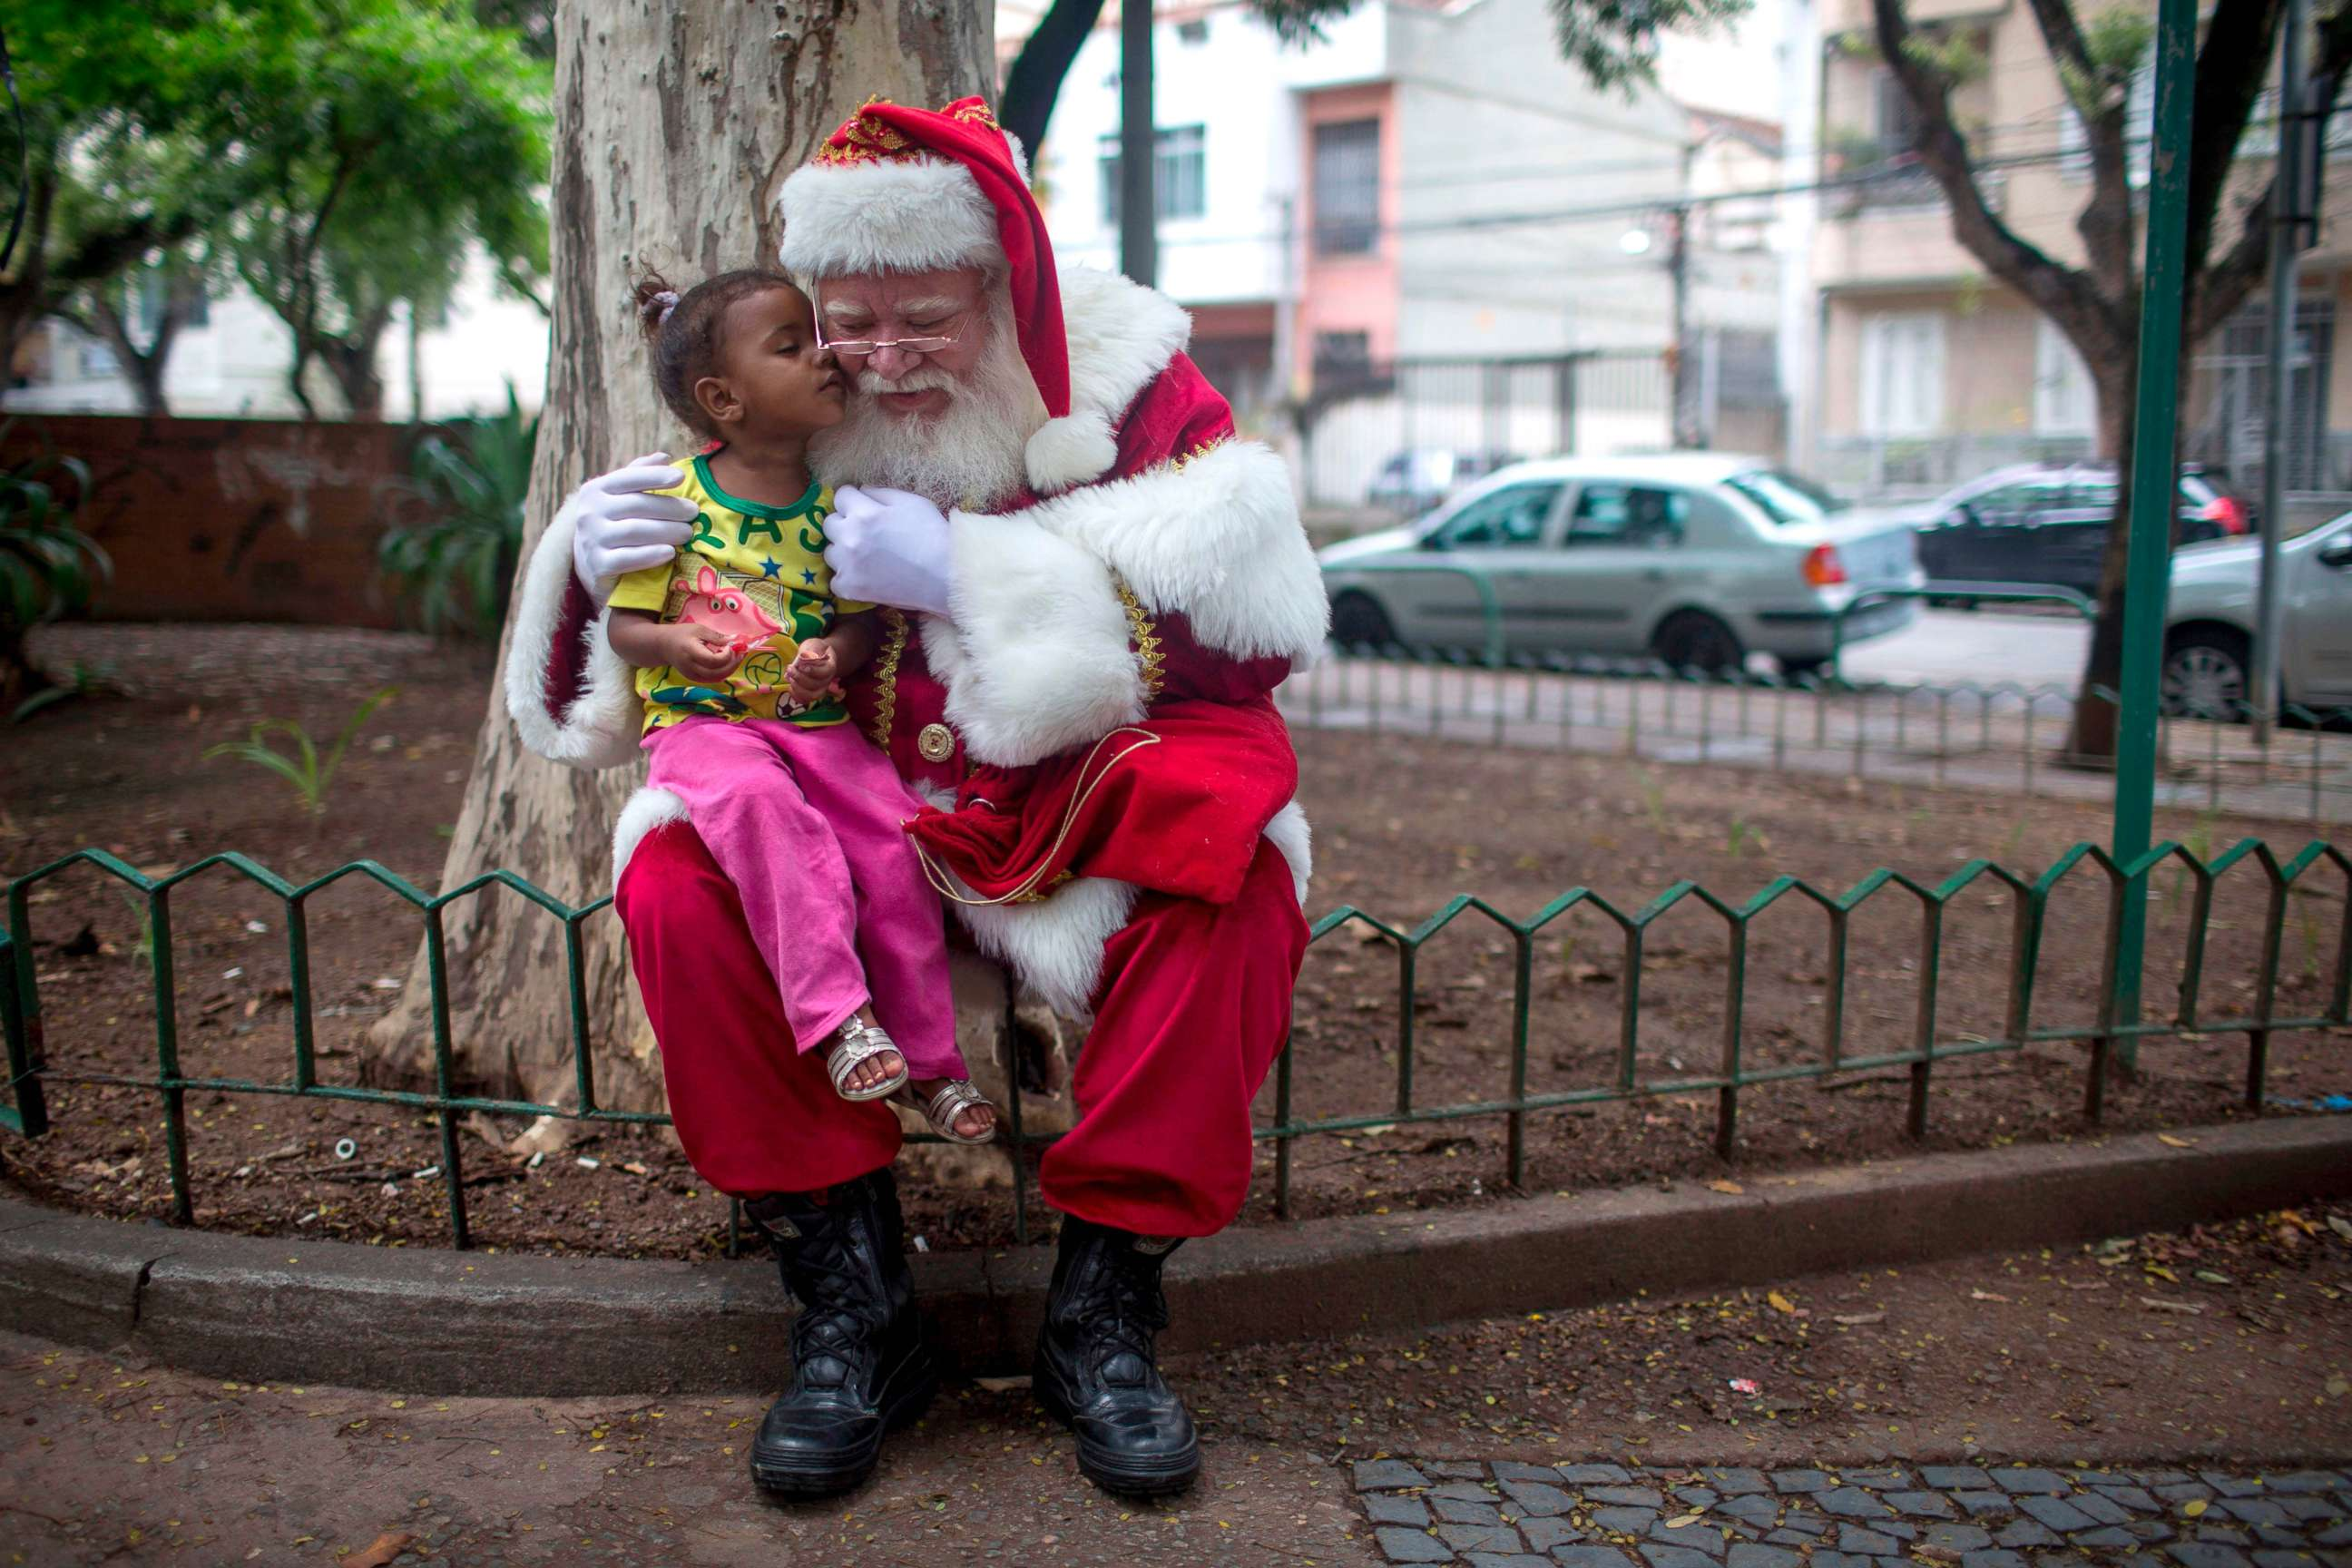 a professional santa claus poses for pictures with a young girl to celebrate the end of the christmas season in rio de janeiro dec 26 2017 - Santa Claus Santa Claus Santa Claus